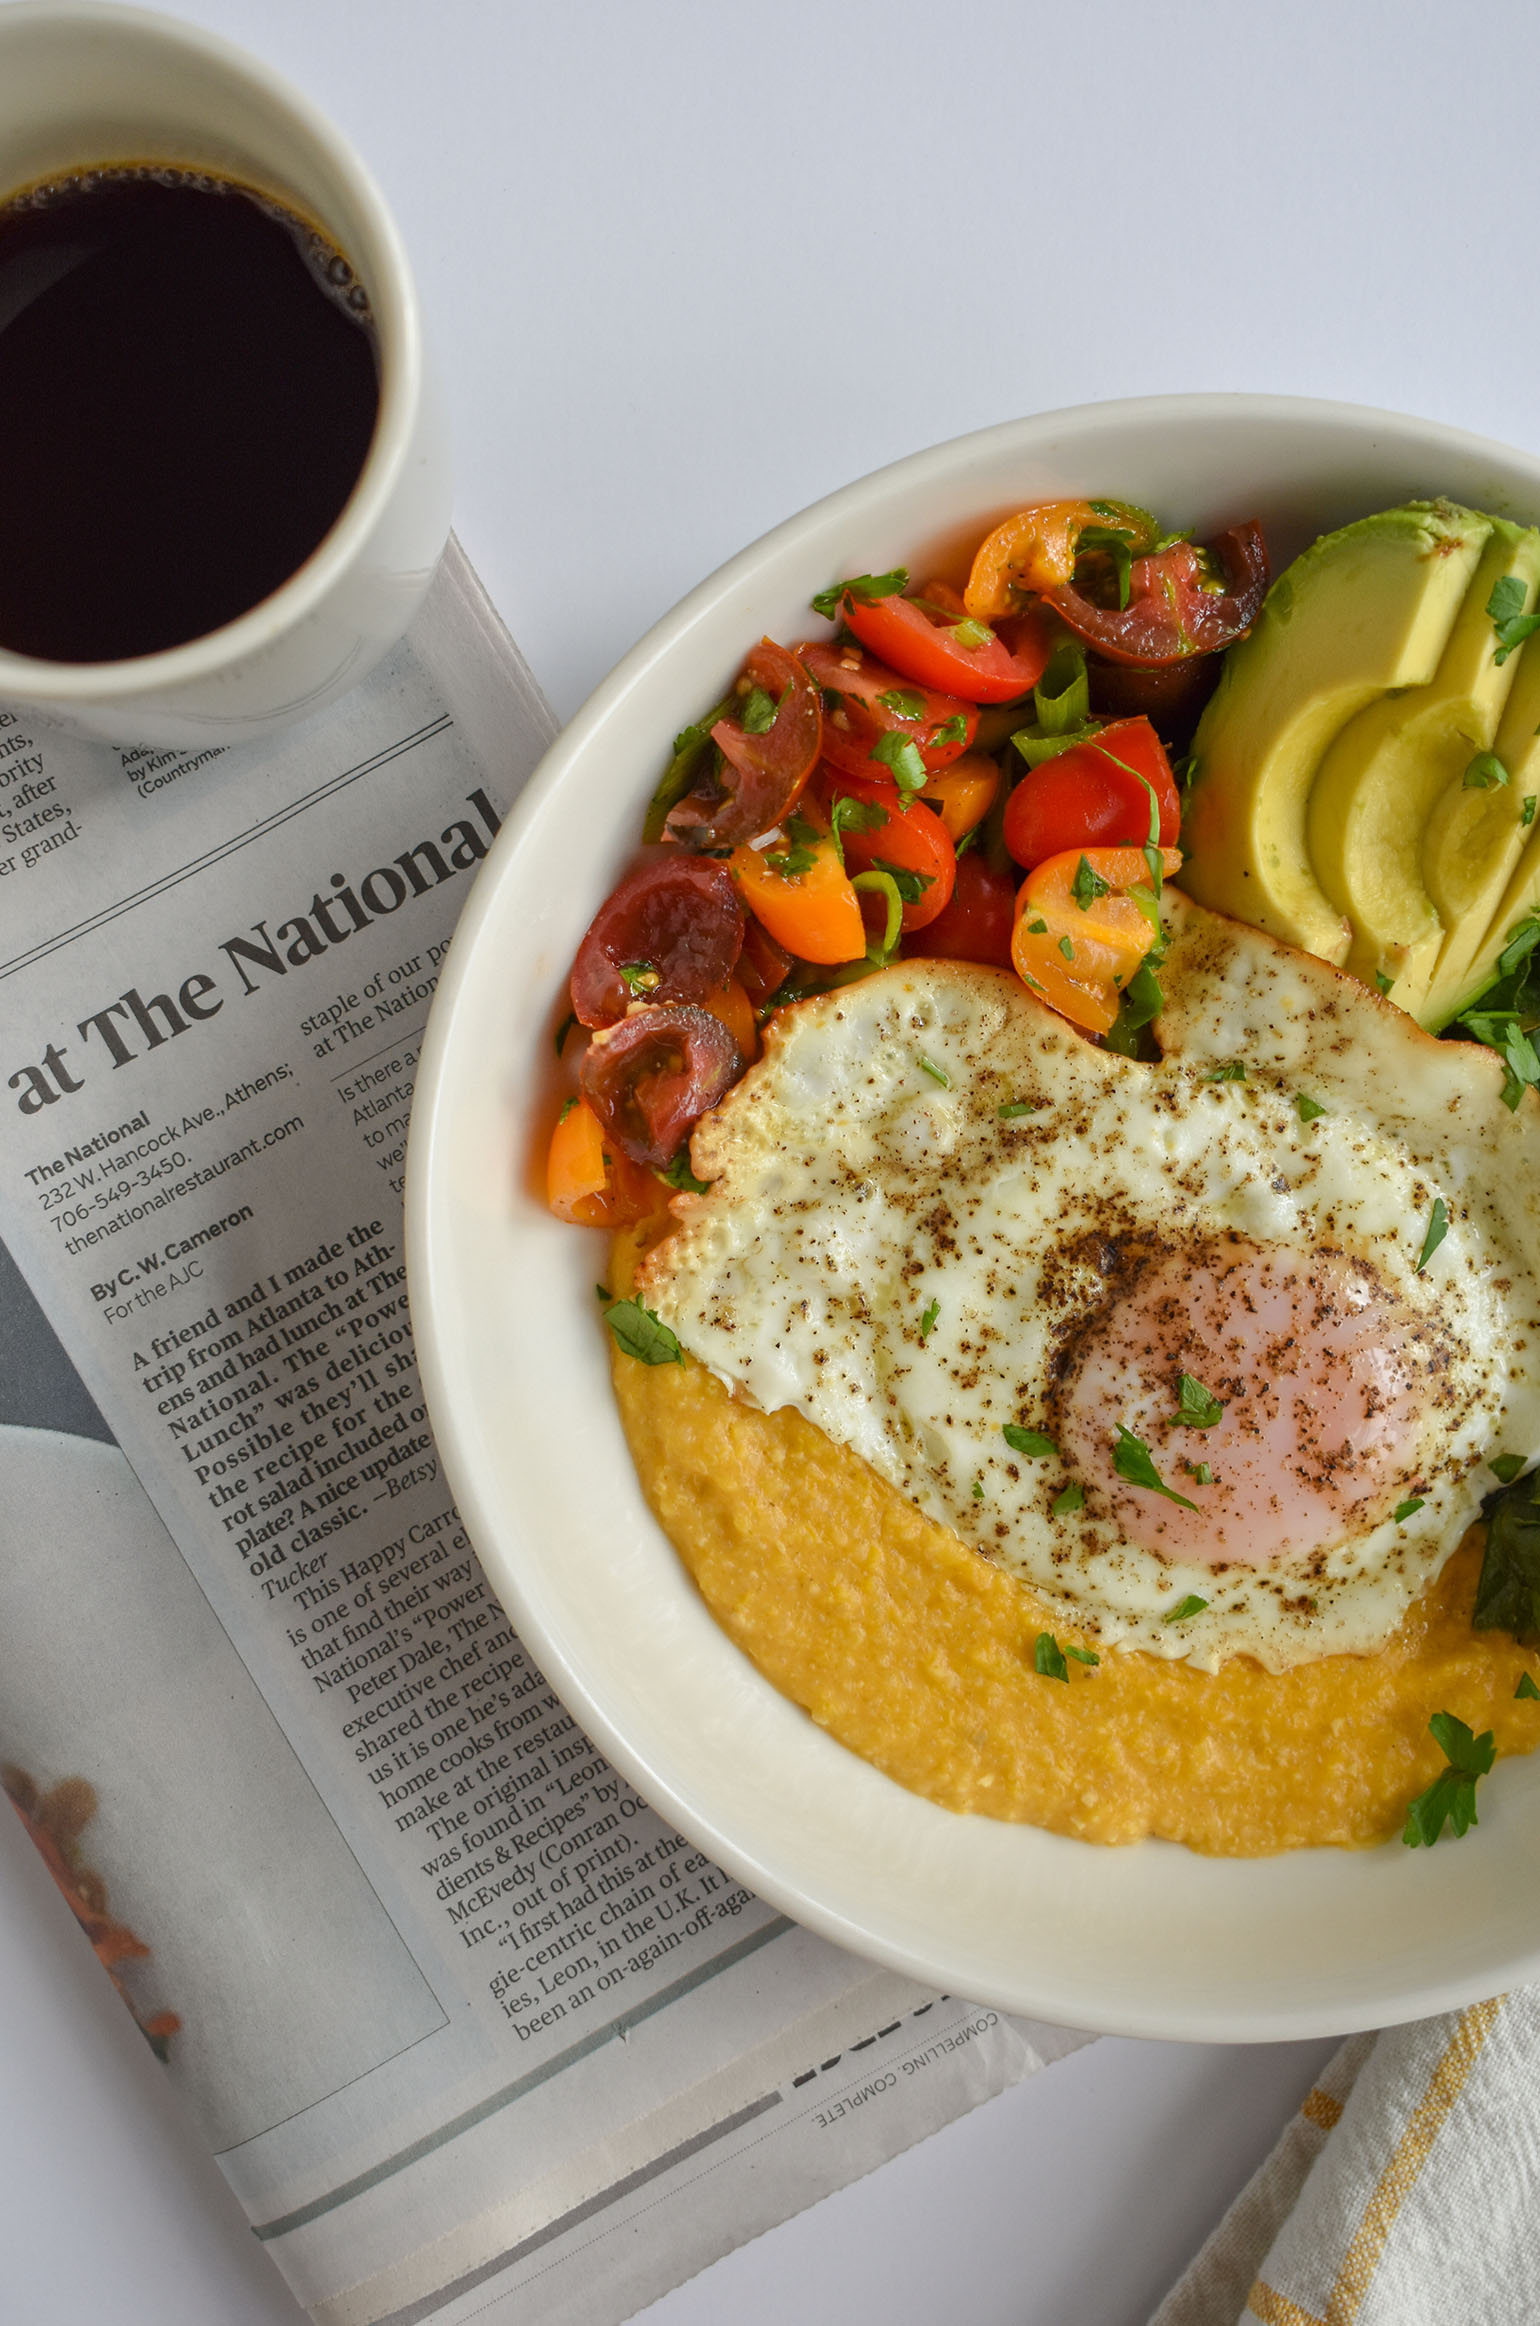 Dreamy savory breakfast bowls filled with summer veggies